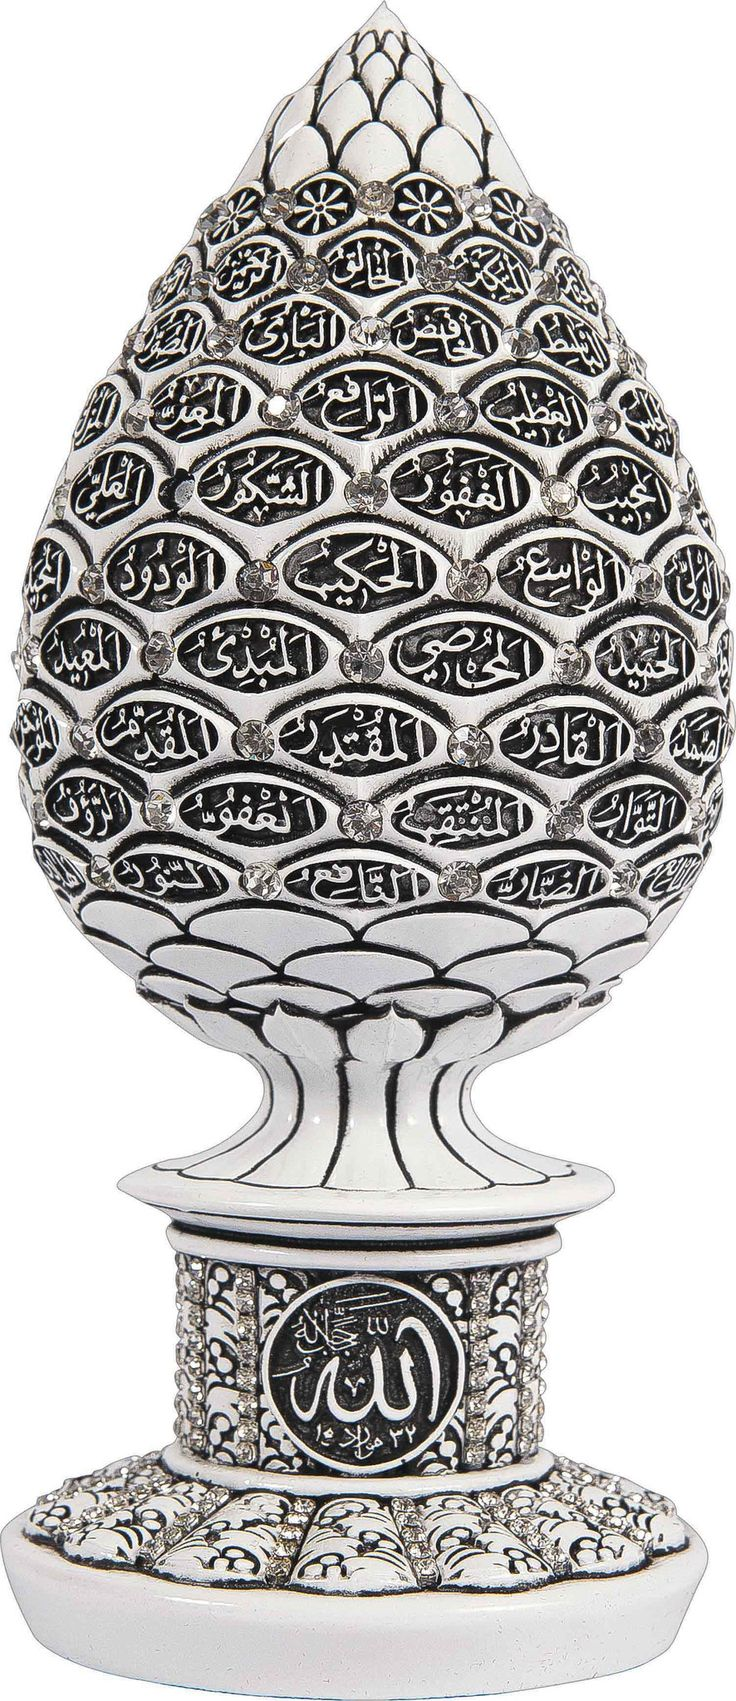 A luxury engraved statue with the 99 names / attributes of Allah (SWT) inscribed on it. A great Wedding,Graduation, Ramadan, Eid, Wedding, New Home Gift, etc. It comes in many different finishes and j